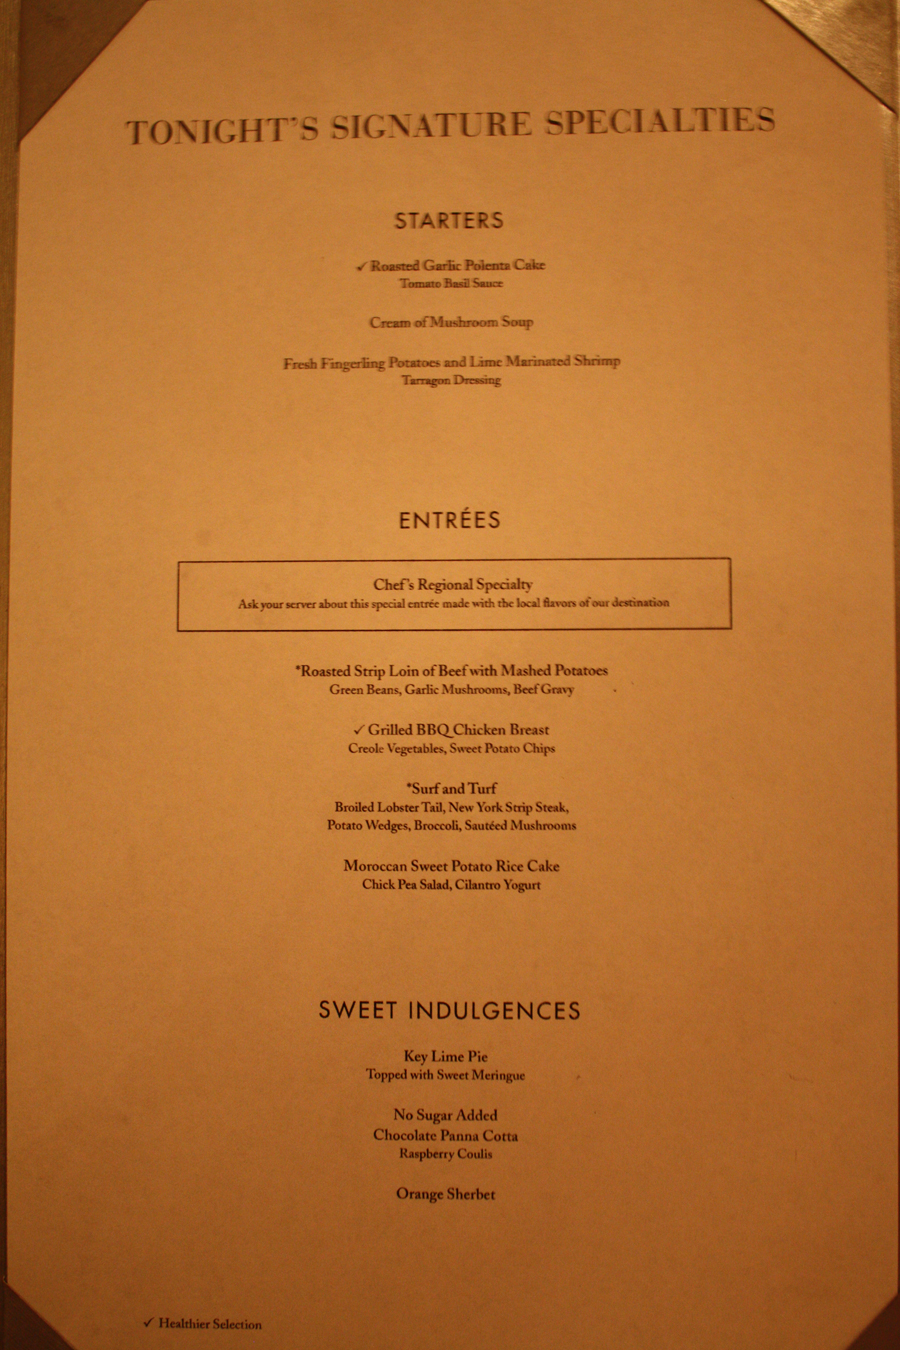 Norwegian Jewel Tsars Dinner Menu Night